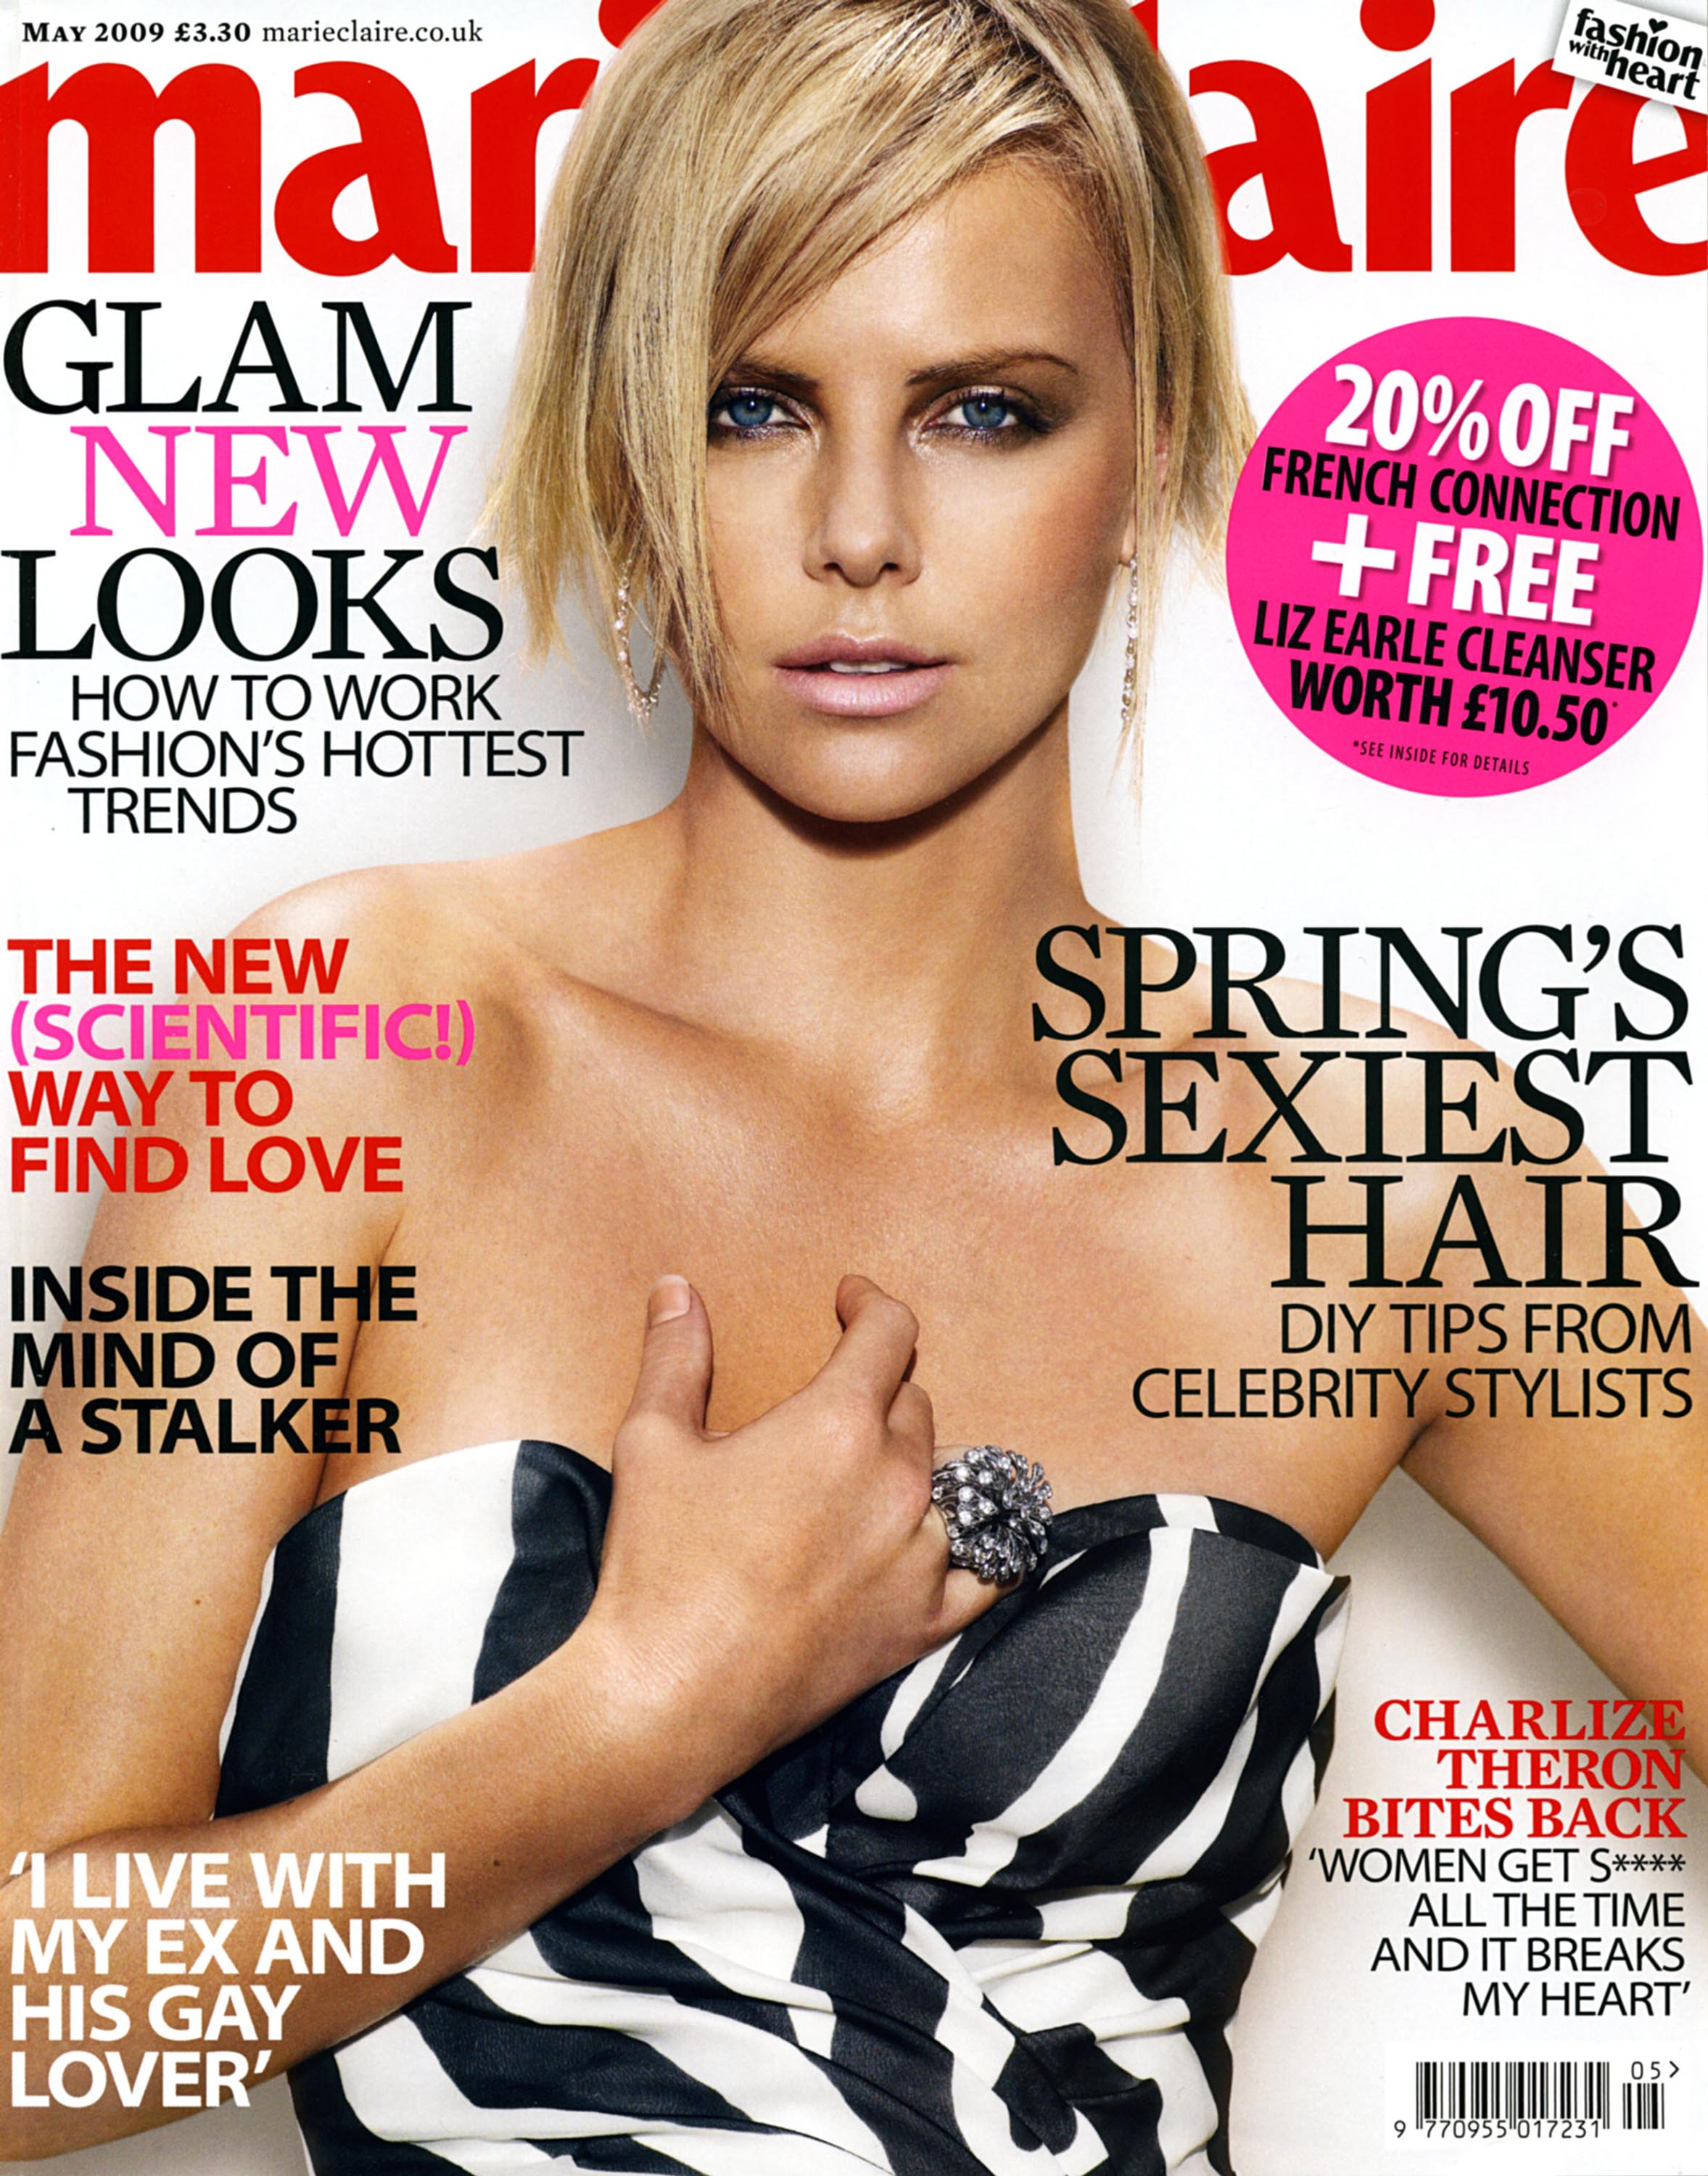 03422_Charlize_Theron_Marie_Claire_122_220lo.jpg